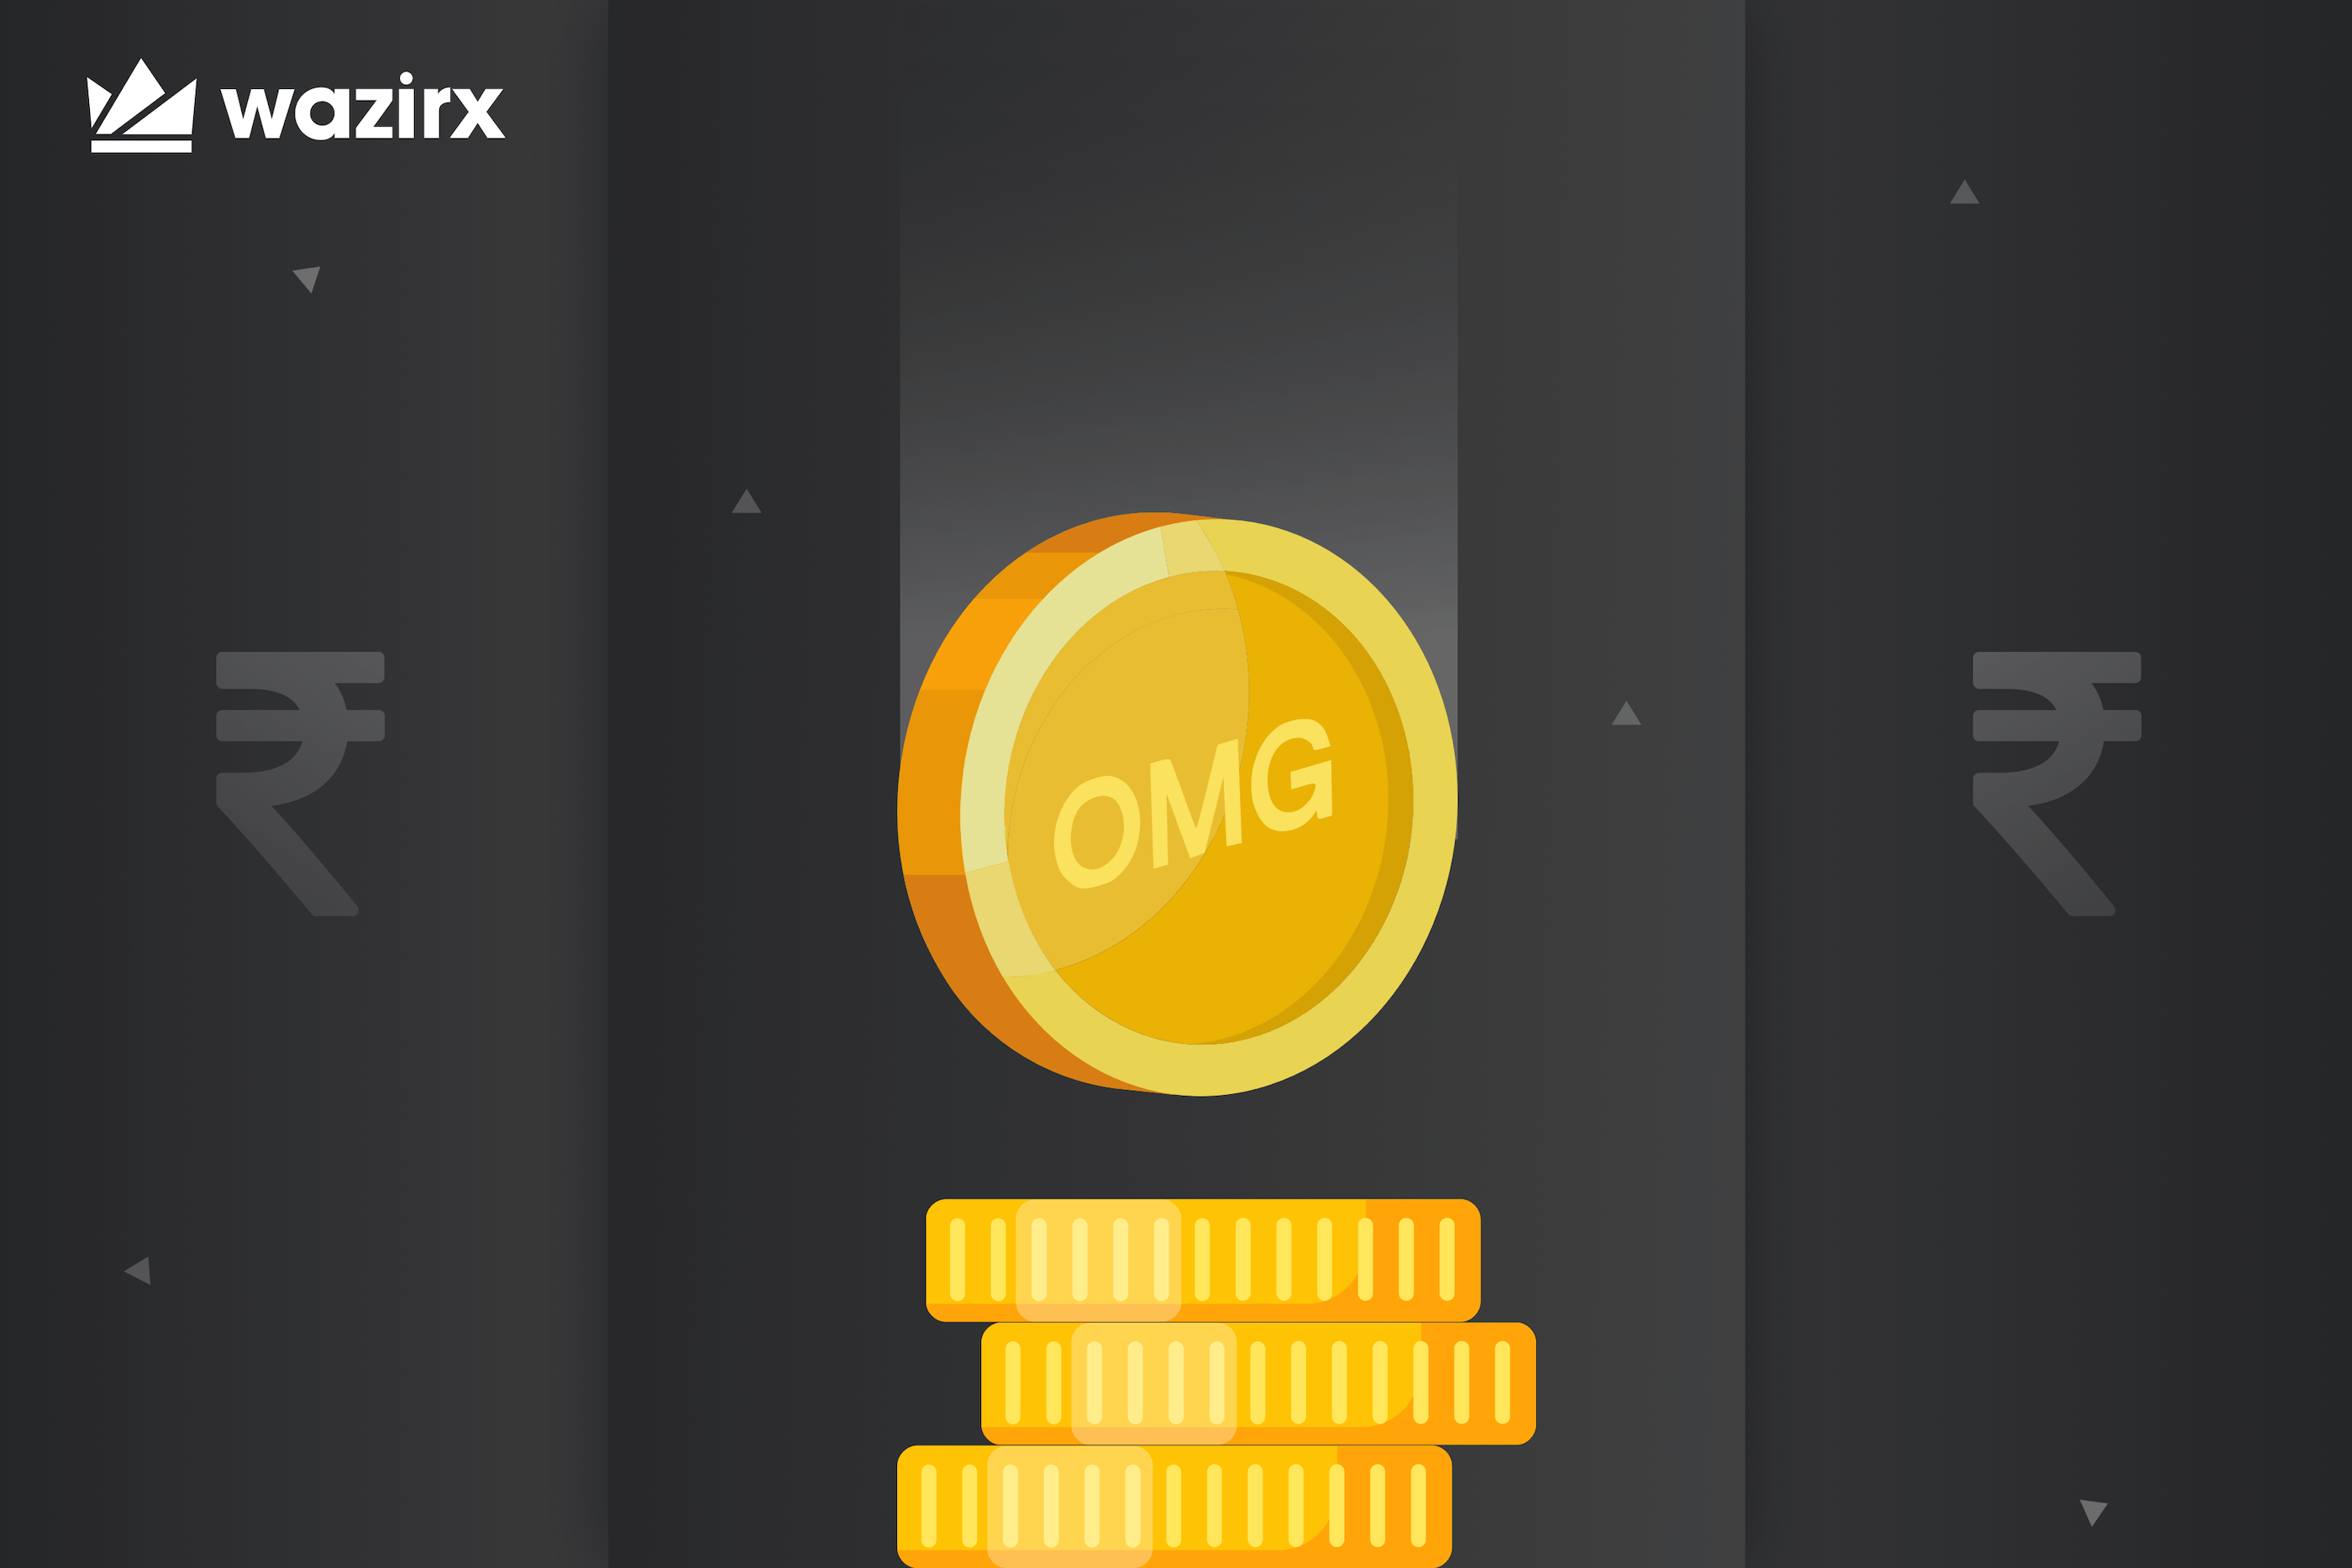 OMG/INR trading is live on WazirX